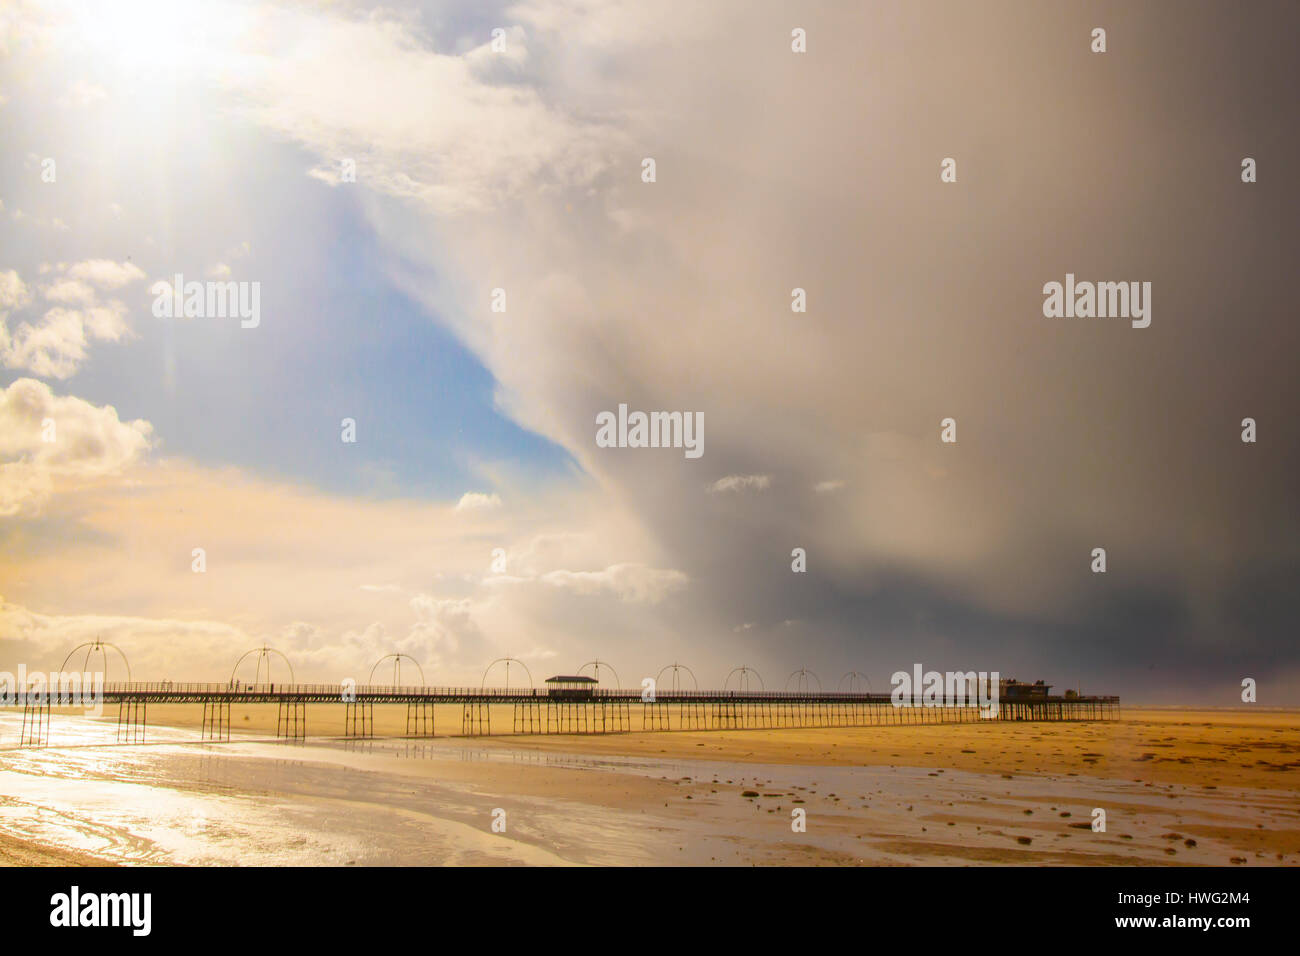 Southport, Merseyside, UK. UK Weather. 21st March 2017. Storm Clouds over Southport Pier and heavy showers over - Stock Image